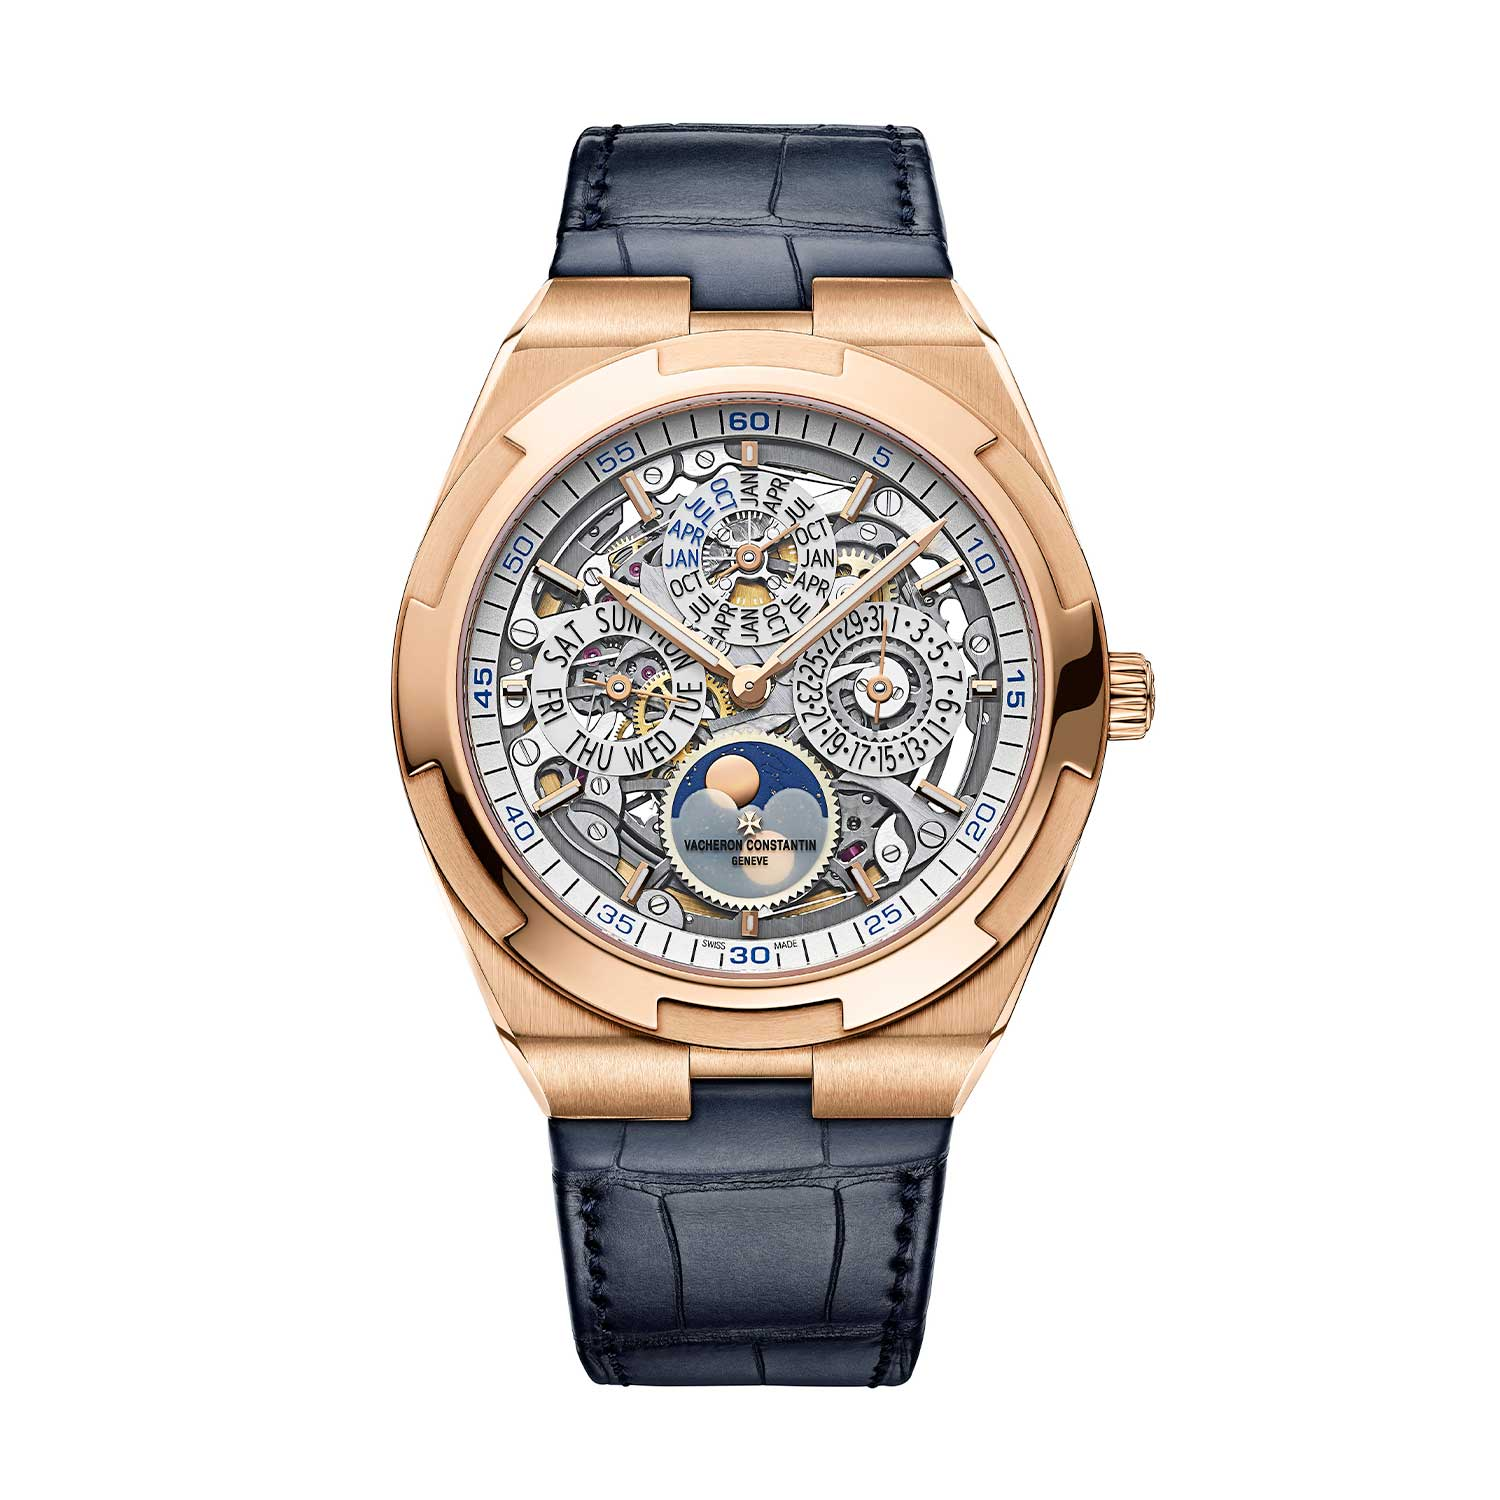 2020 41.5mm Overseas Perpetual Calendar Ultra-Thin Skeleton ref. 4300V/120R-B547 on a leather strap